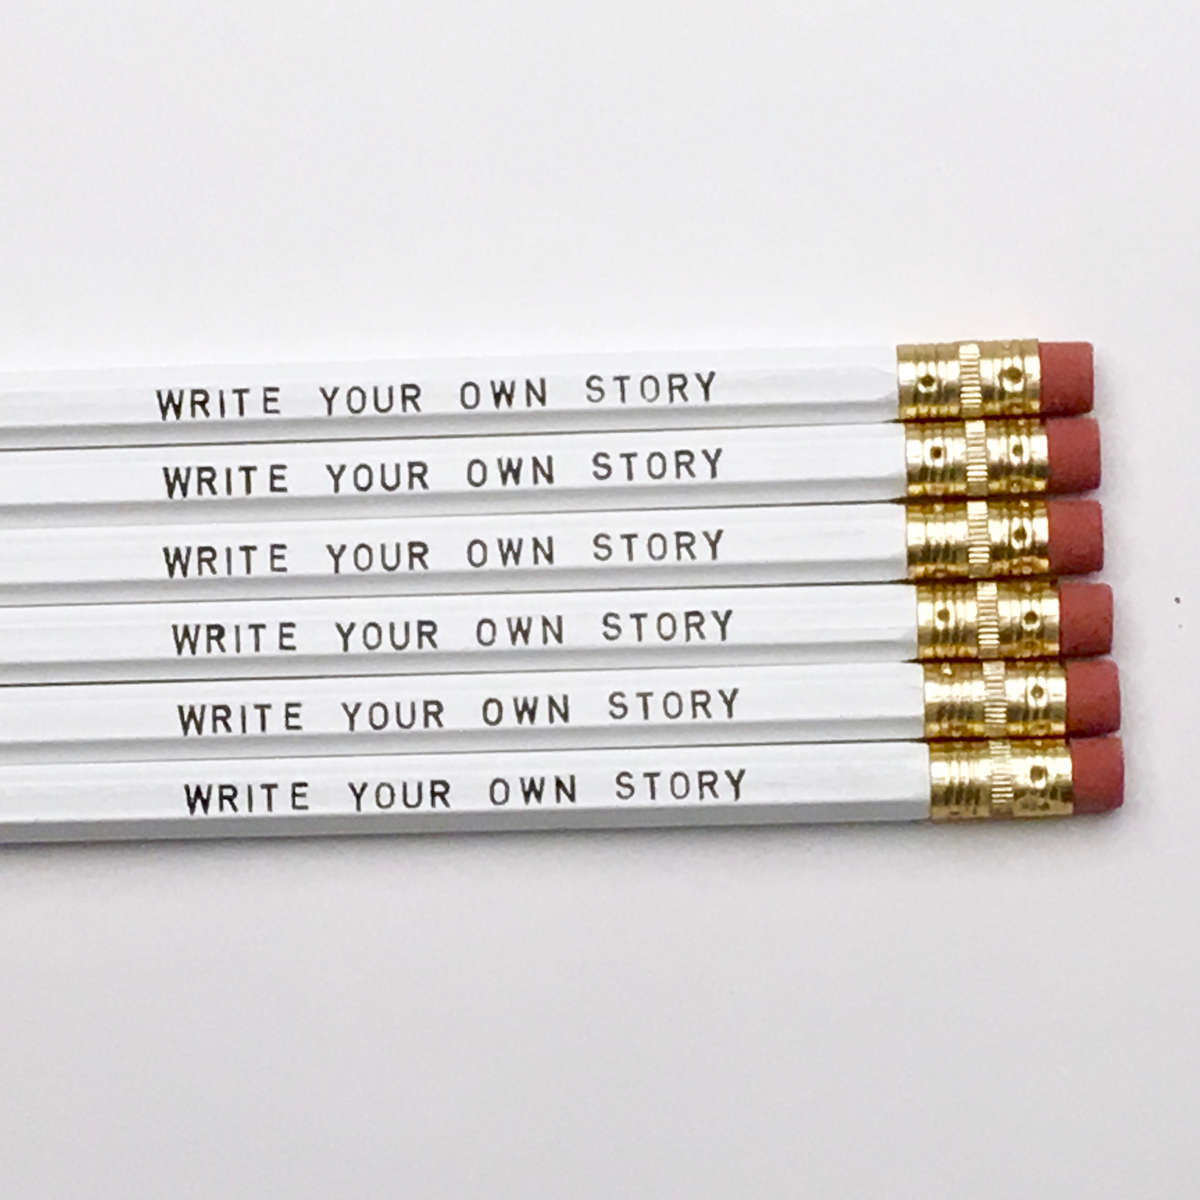 purchase herethis pencil set is perfect for any stationery lover. // whether you're a brain surgeon or an entrepreneur or a professional daydreamer,we encourage everyone to write their own story... and, by all means, make it memorable.set of six imprinted hexagon pencils // white pencils + black textunsharpened + packaged in a sealed cellophane sleeve (ready for gift giving)fantastic gift idea for teachers + students + anyone, really... especially yourself!